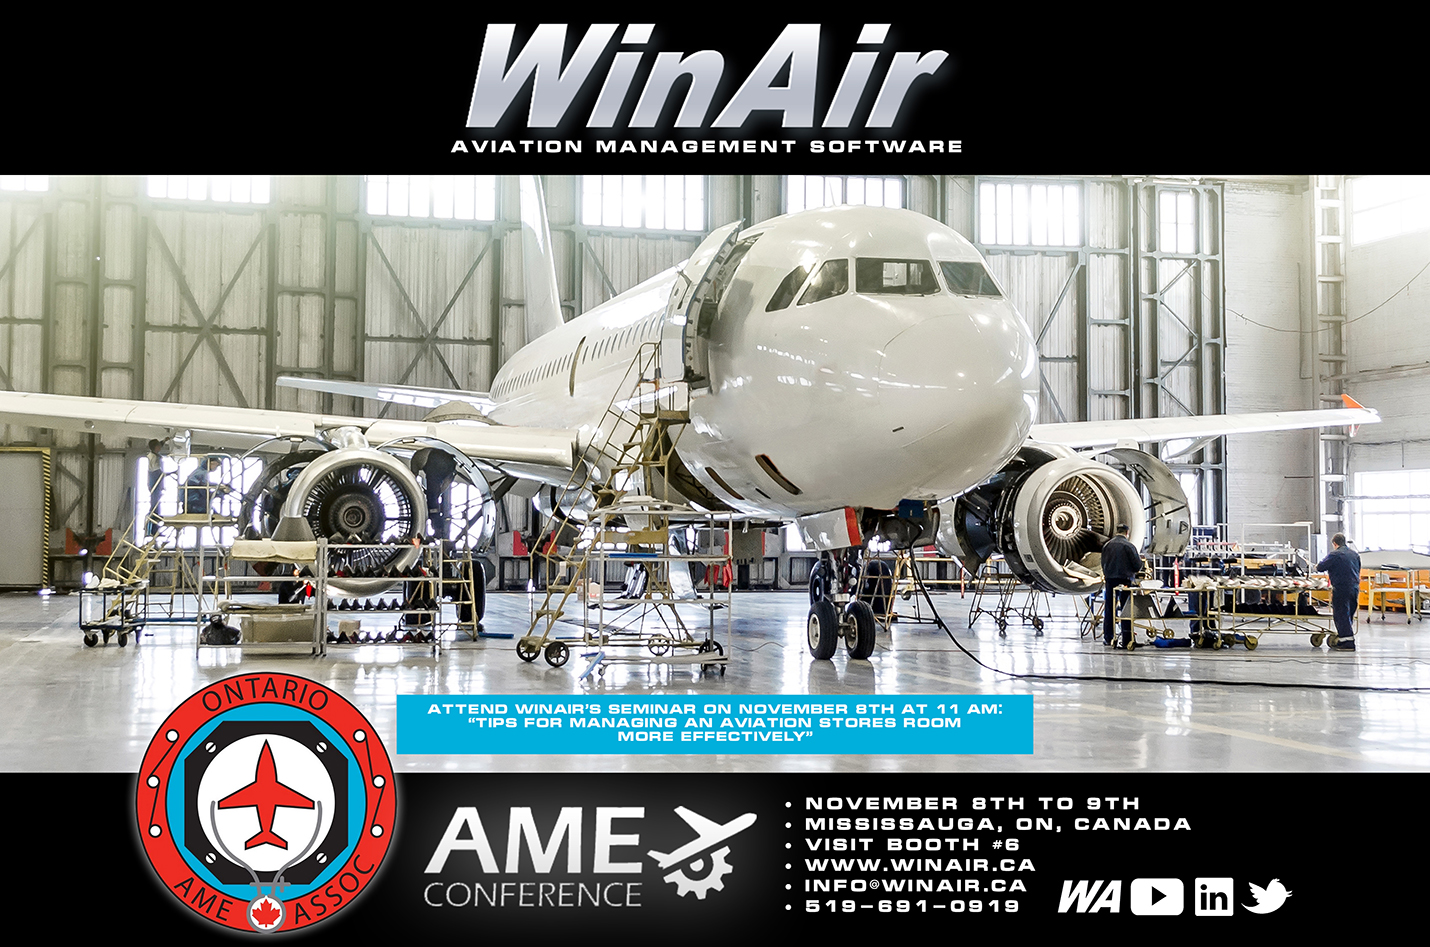 WinAir - Aviation Management Software - Ontario AME Conference - Visit Booth 6 - Promotional Event Image